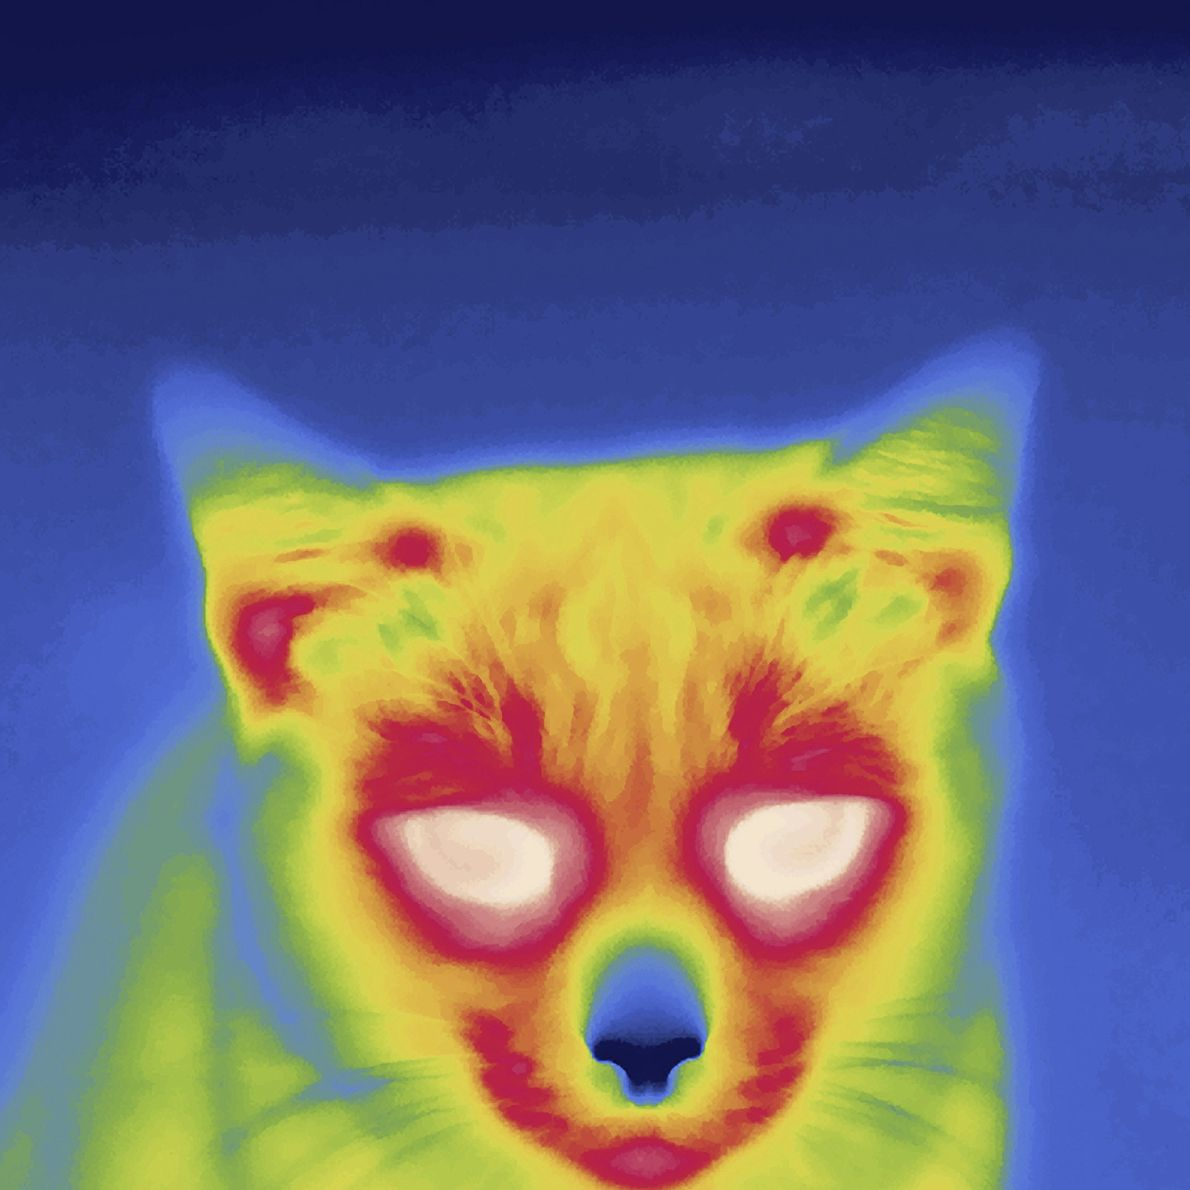 Although they're renowned for their night vision, cats can't compete with infrared light for piercing the ...